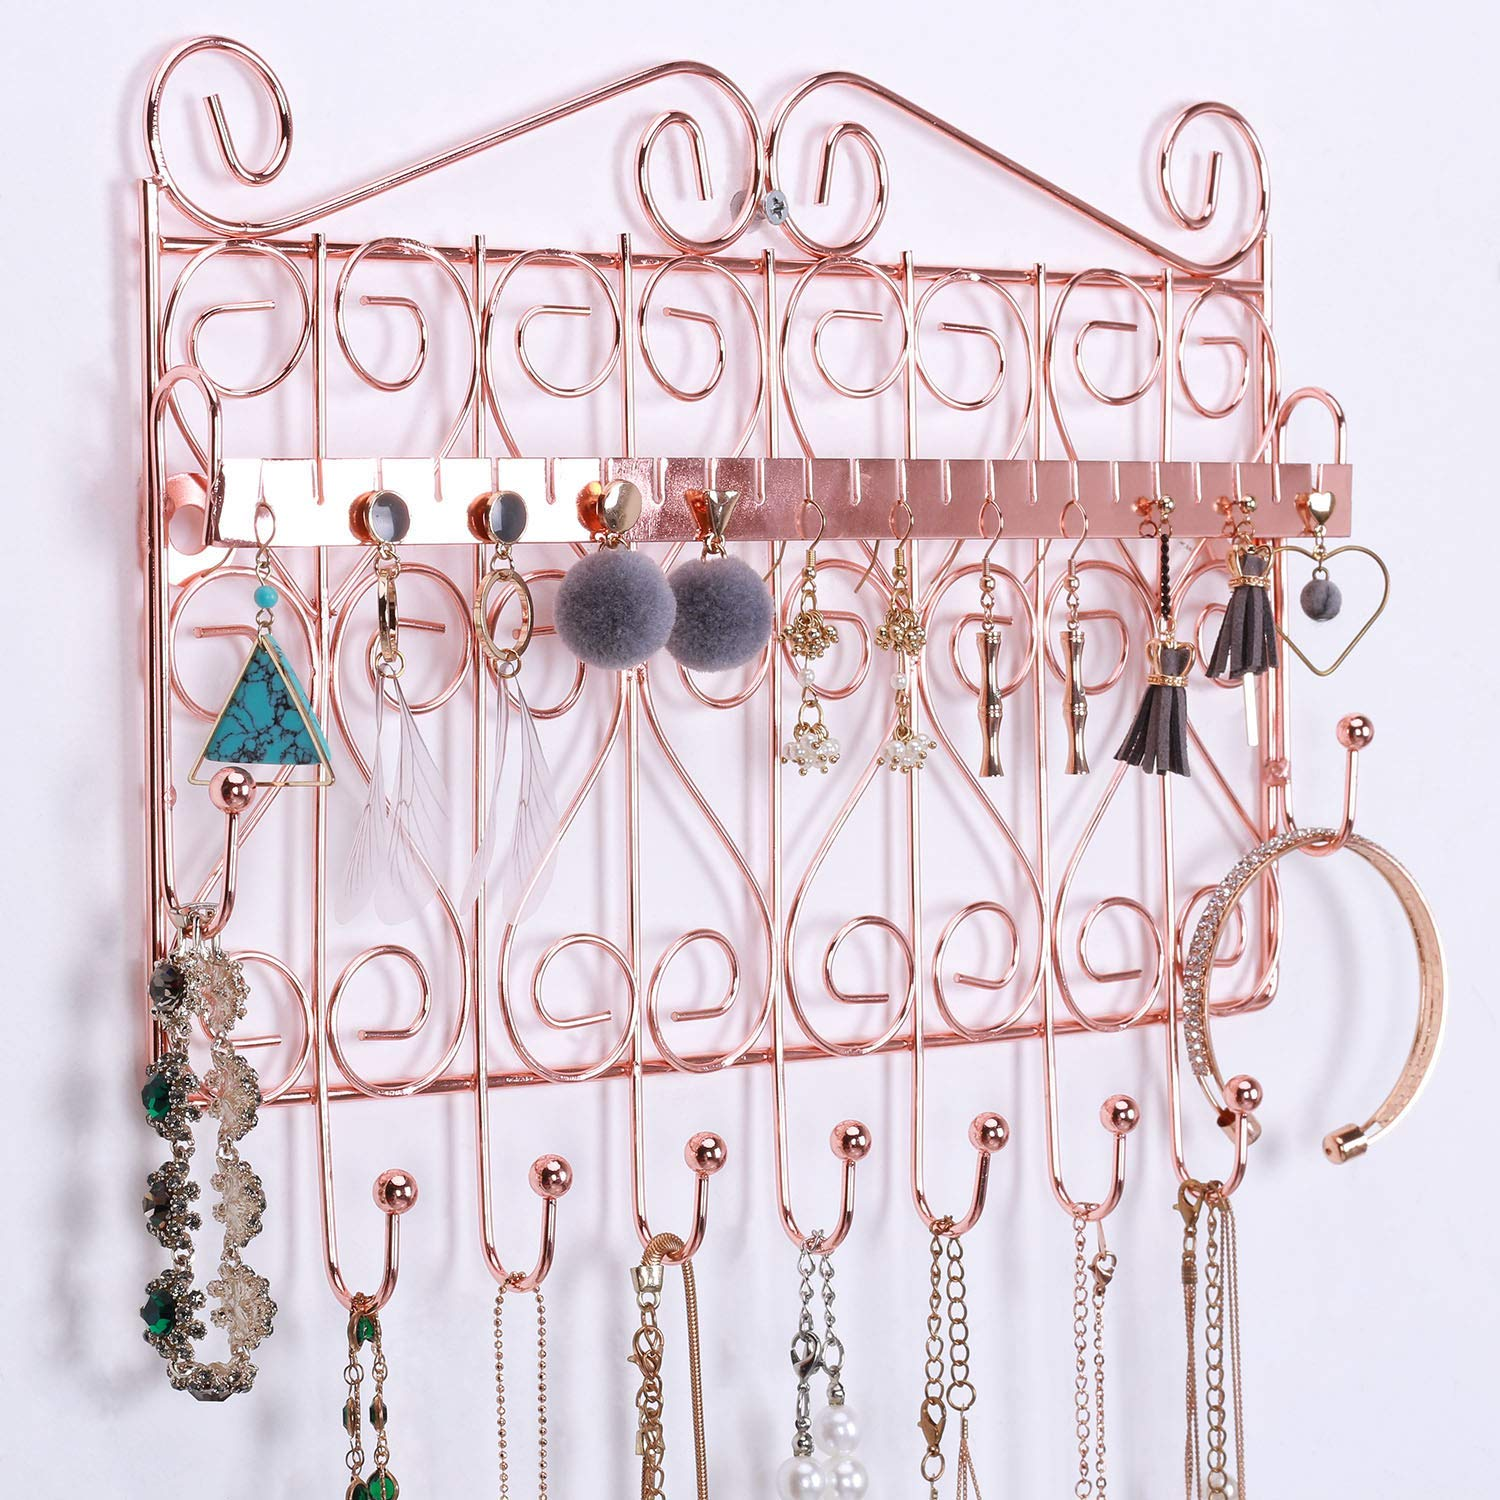 Rumcent Hanging Jewelry Organizer Rack Wall Mounted Jewelry Holder For Earring Necklace Bracelet Decorative Jewelry Hanger Display Rack Rose Gold Hanging Jewelry Organizers Home